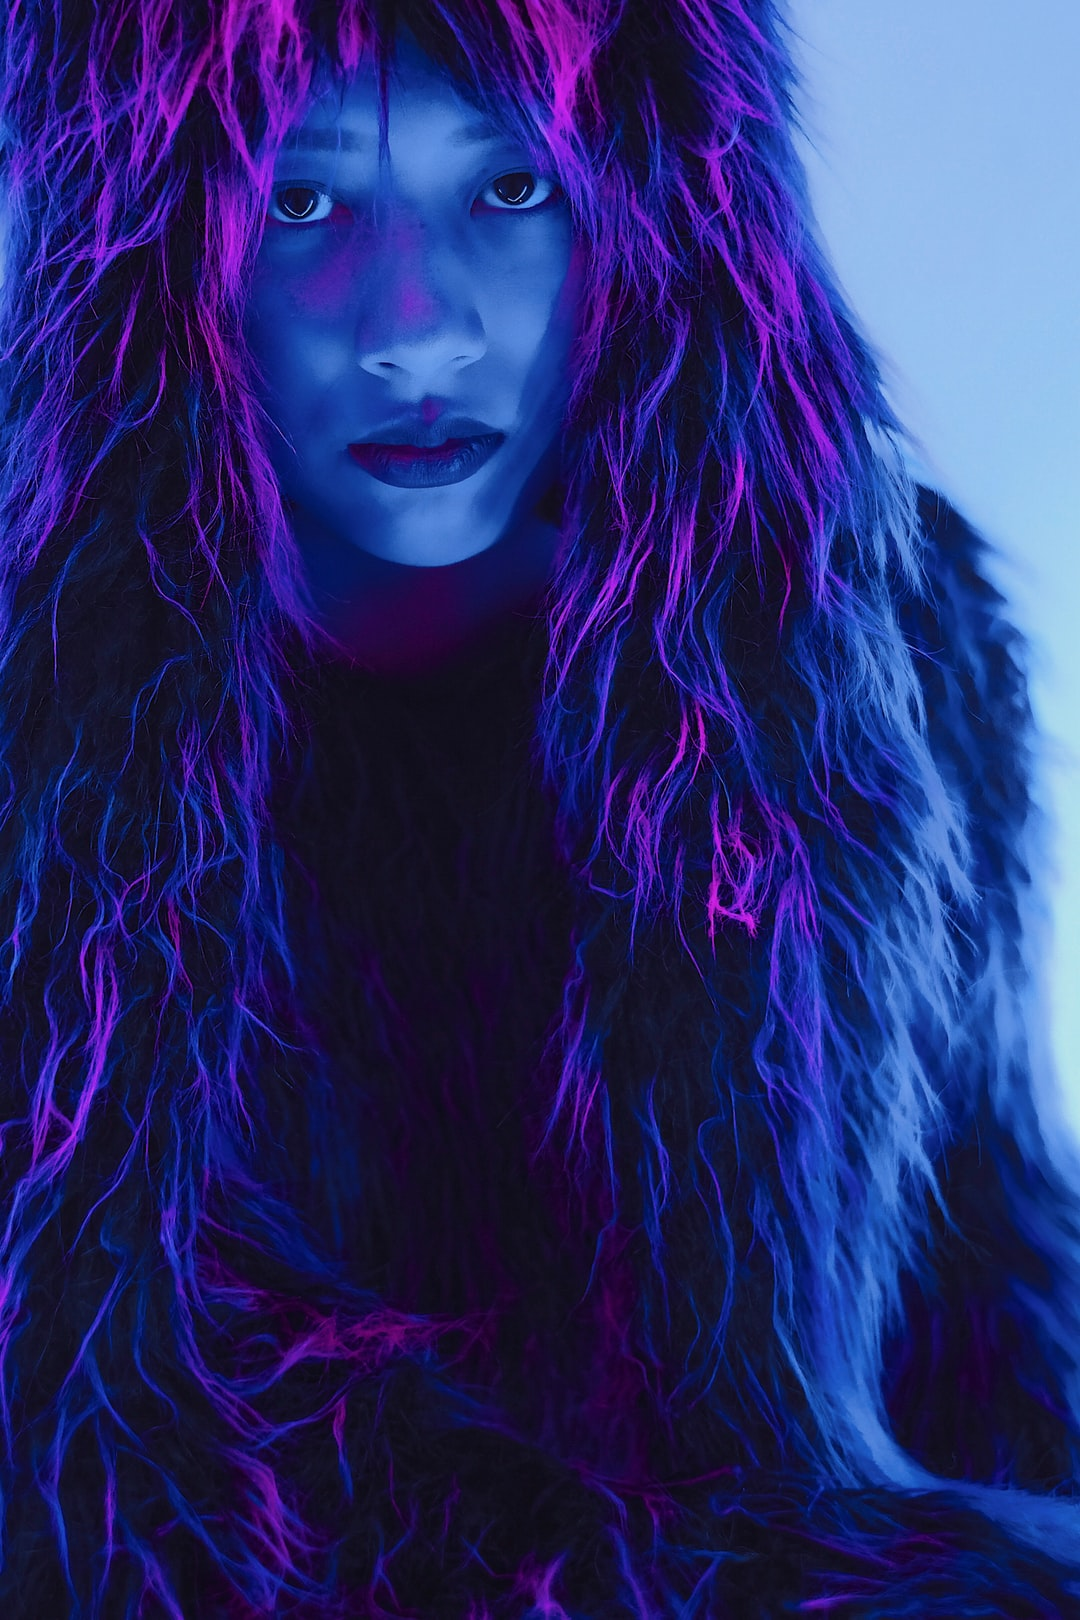 An image of a serious-faced woman draped in furs, lit in futuristic purples and blues.